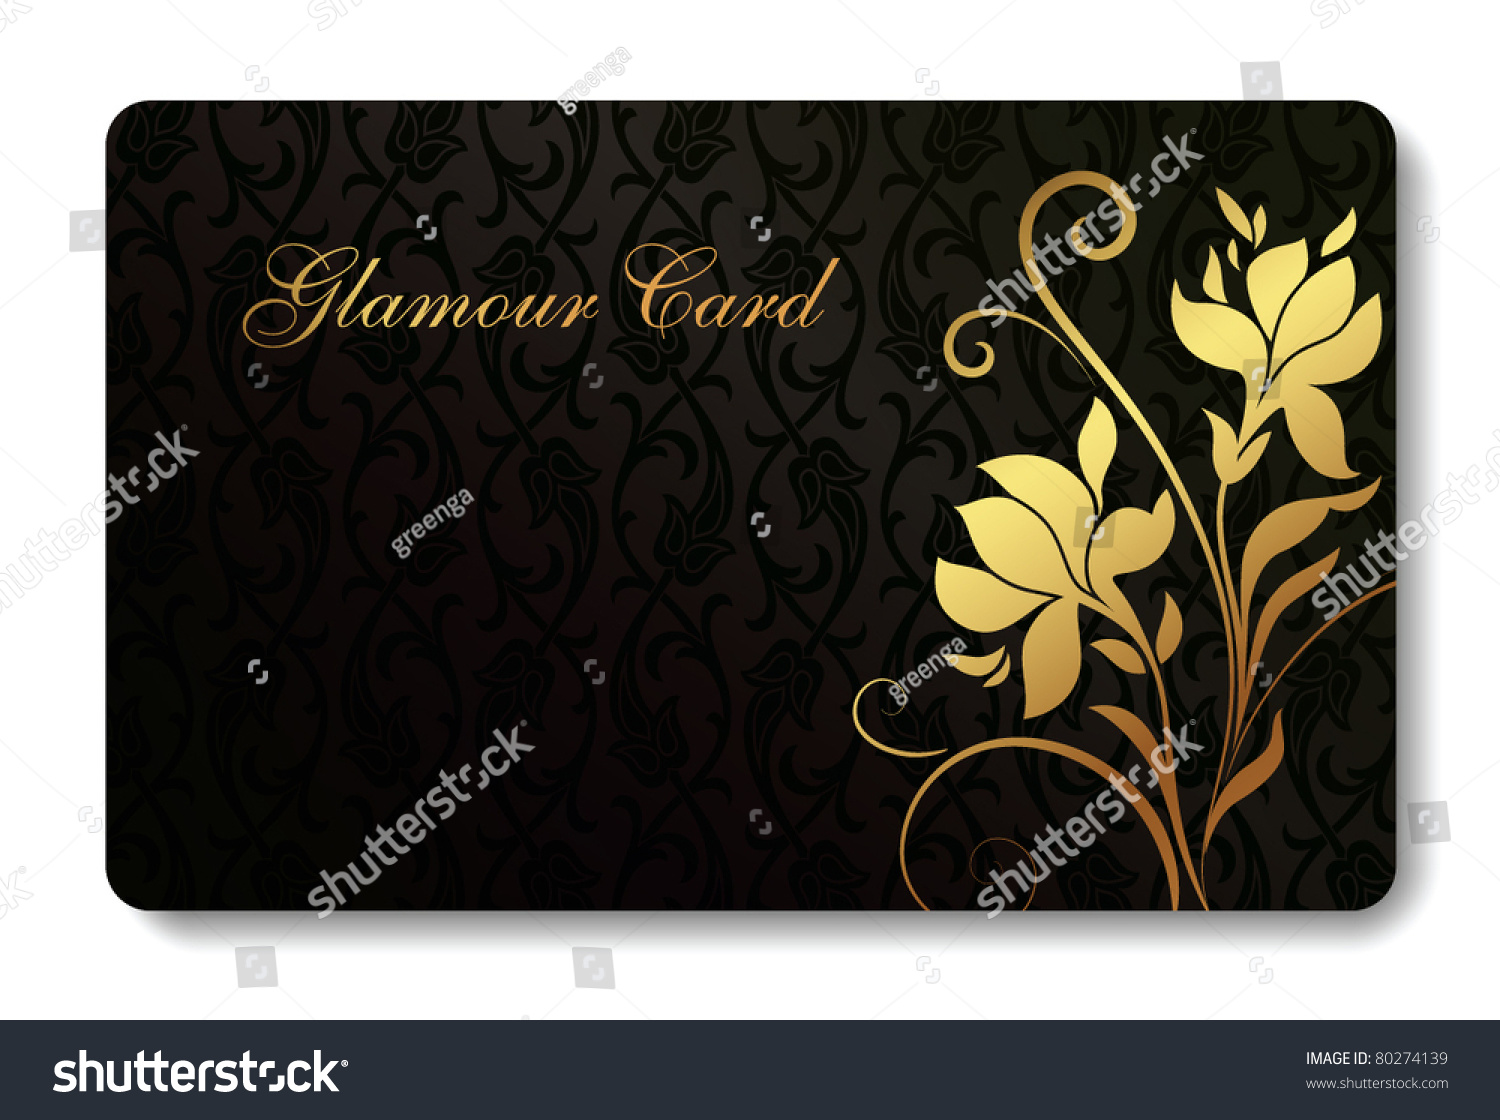 Credit Card Business Card Background Design Stock Photo (Photo ...